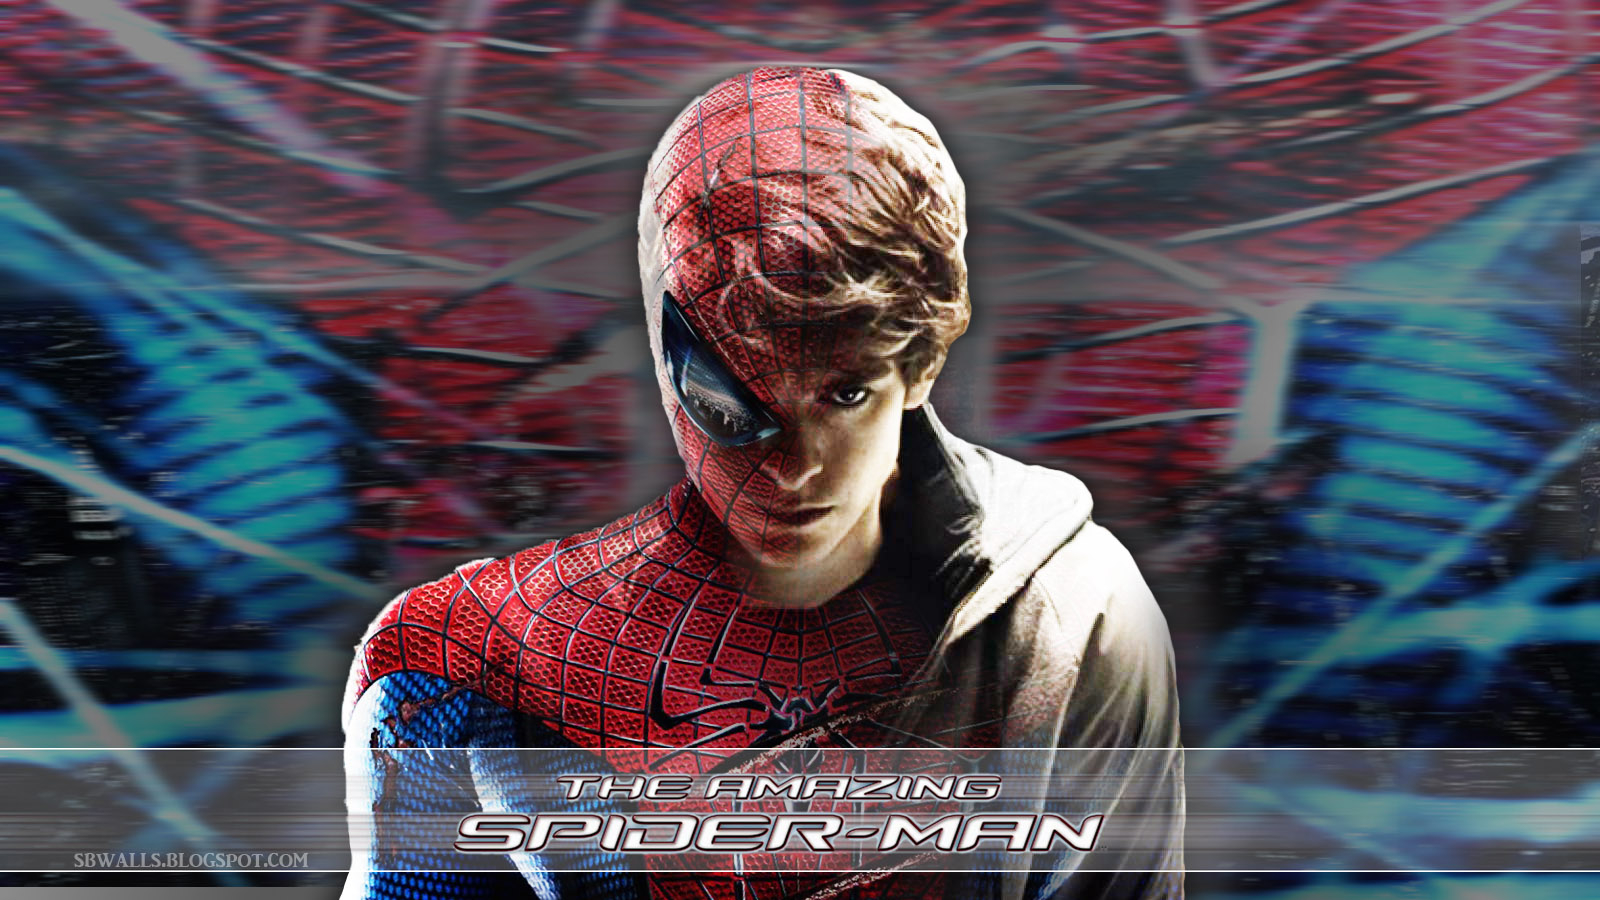 Free Download Amazing Spiderman Movie Wallpaper Spider Man